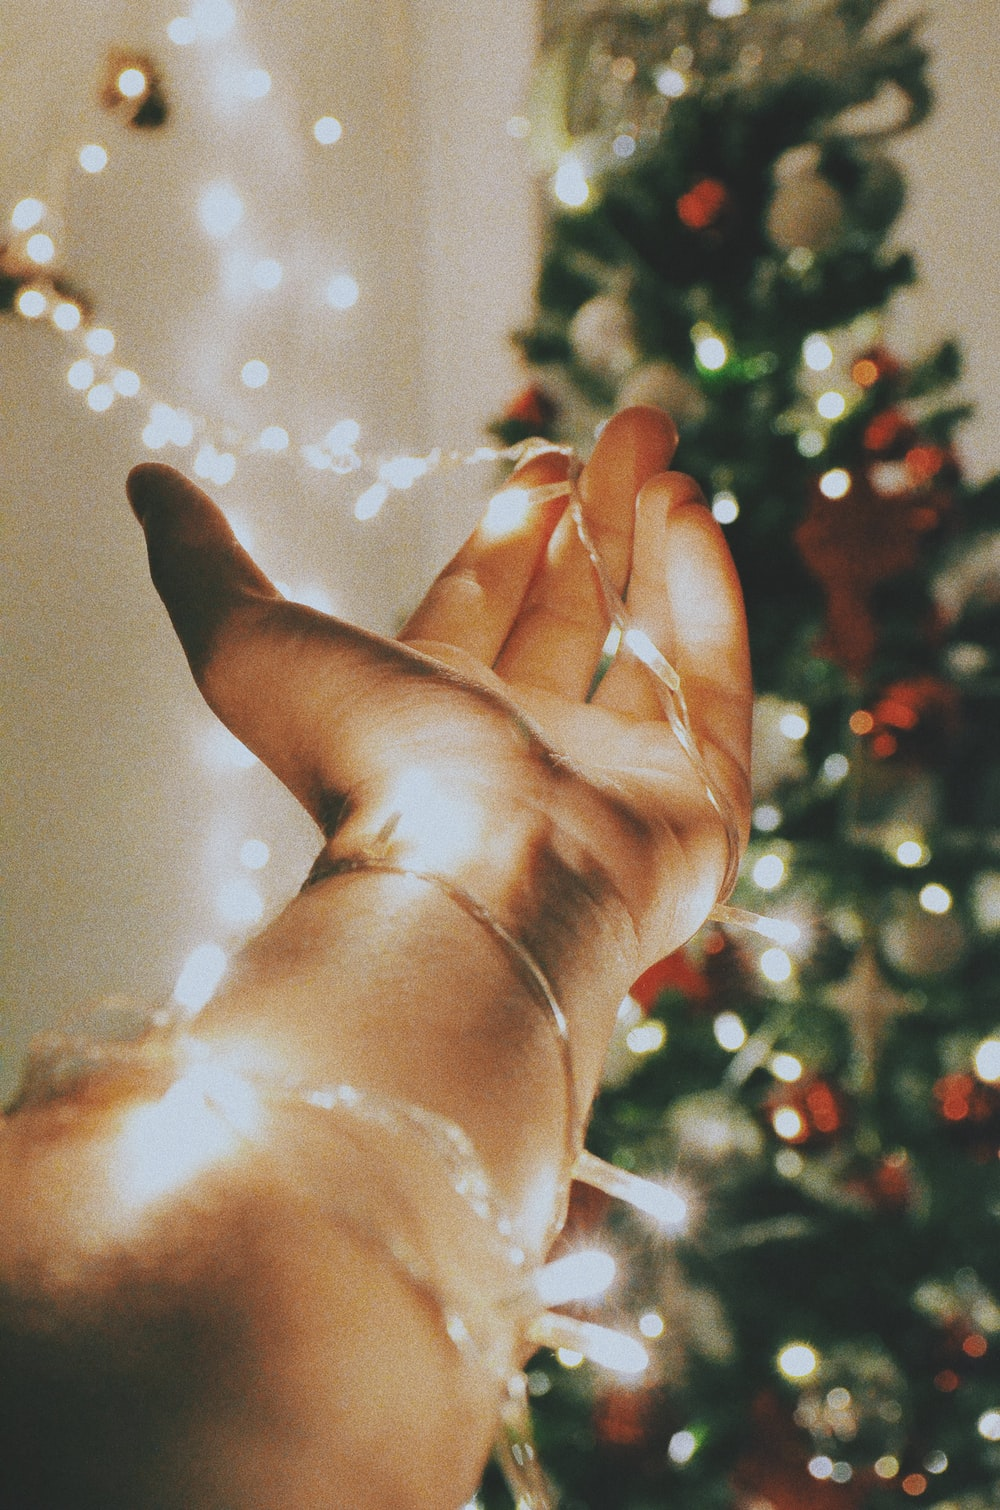 person holding stripe light near the Christmas tree